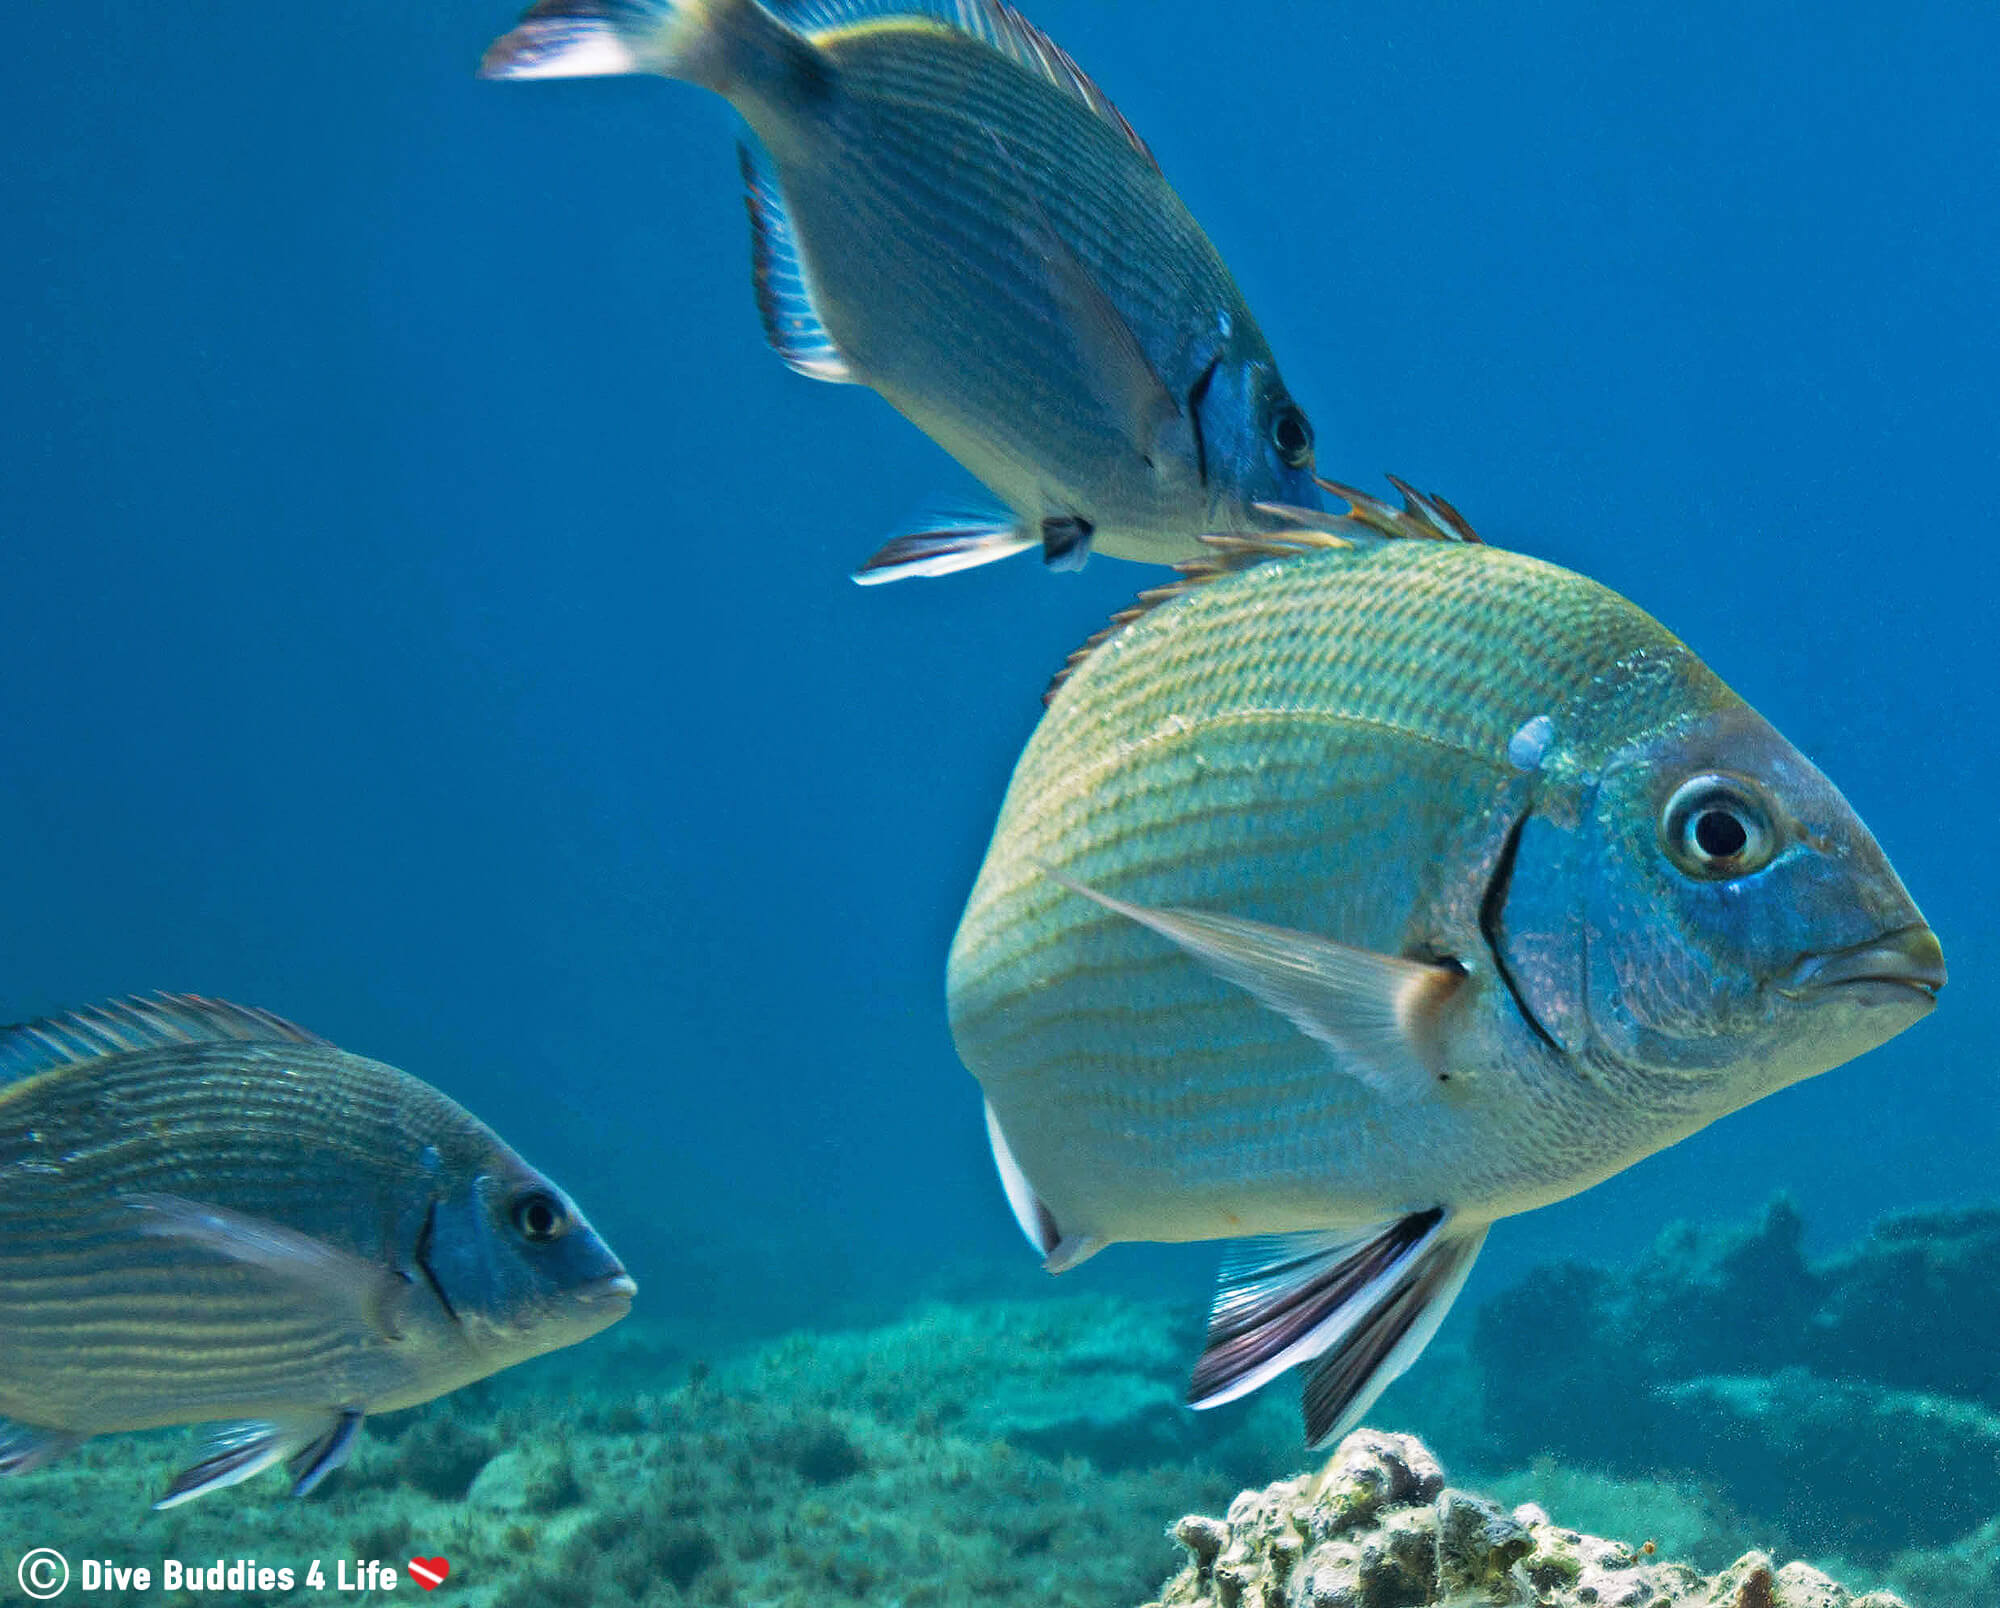 A Trio Of Sea Bream In The Blue Water Of Montenegro, Scuba Diving In The Balkan Countries Of Europe